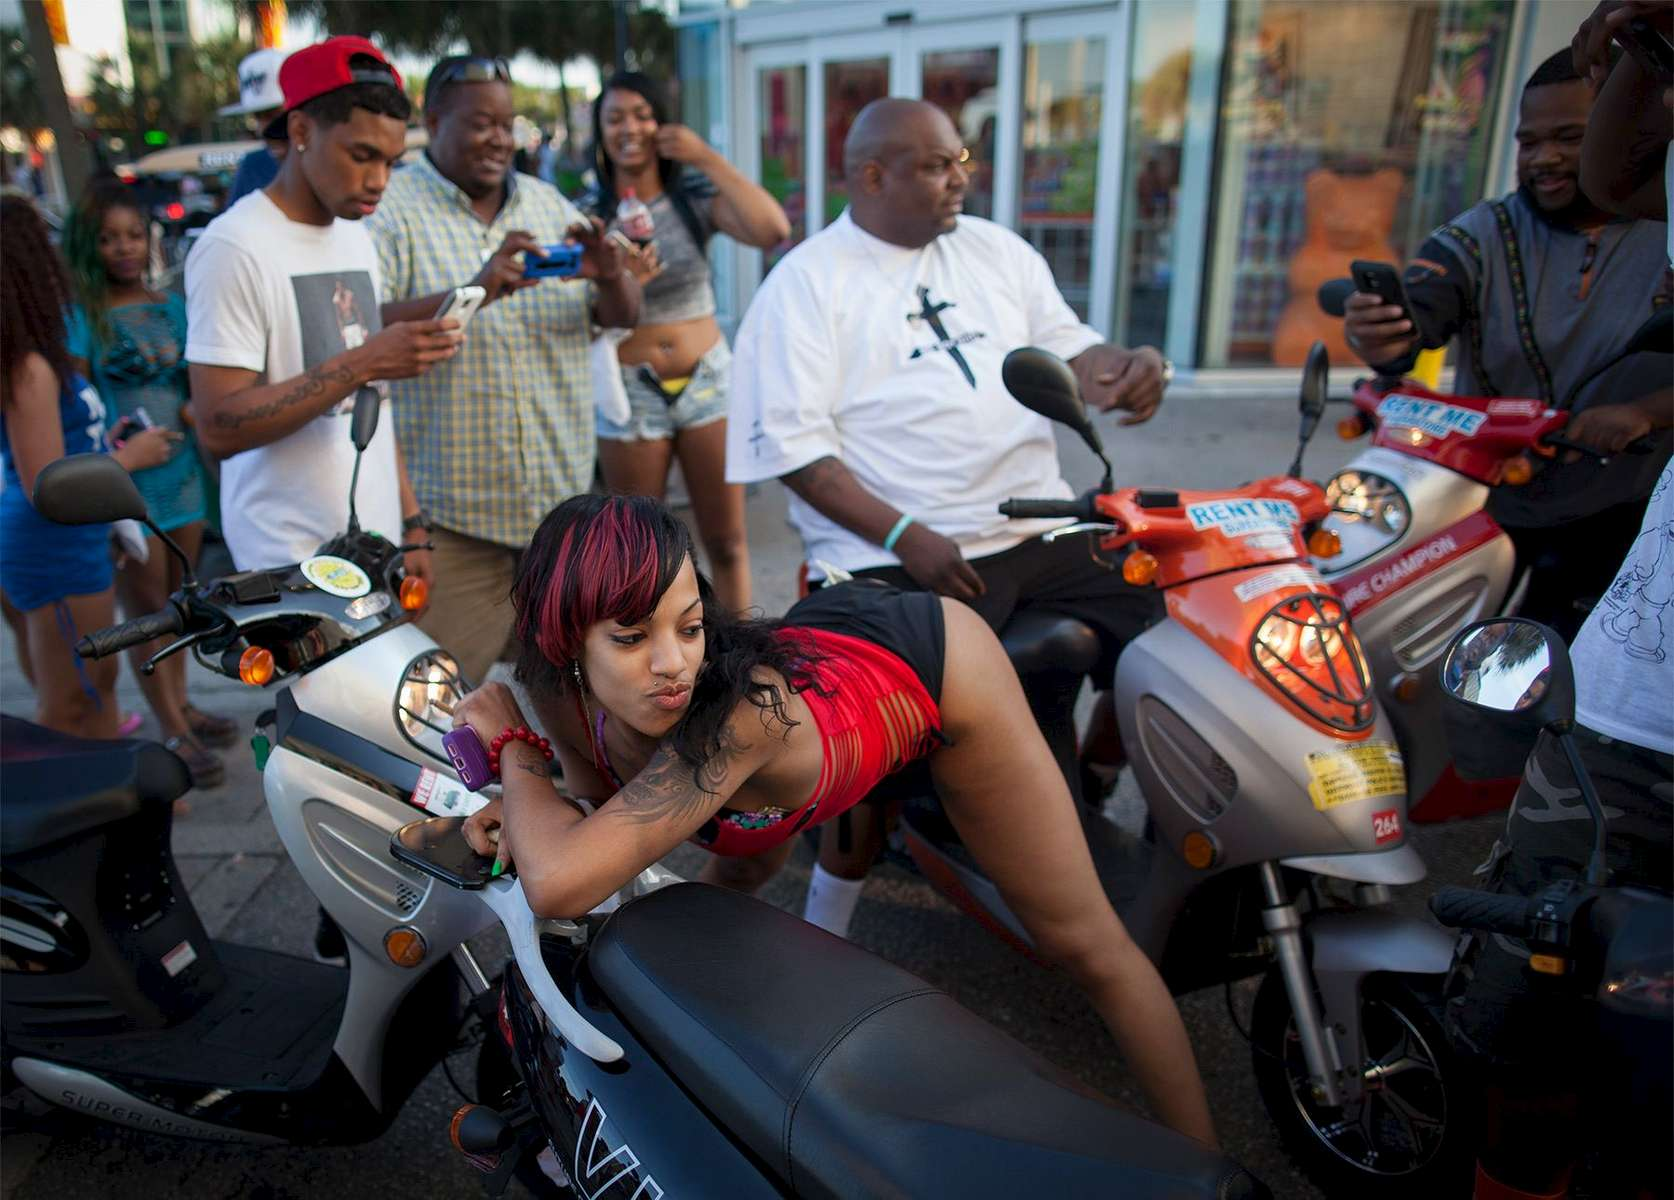 Brandy Shelton of Greensboro, North Carolina twerks for a group of bikers on Ocean Boulevard during the 2015 Atlantic Beach Memorial Day BikeFest in Myrtle Beach, South Carolina May 22, 2015. After three people were killed and seven wounded in shootings during 2014 Bikefest, State officials called for an end to the event that draws thousands to the family-friendly beach town.Their efforts were unsuccessful. Bikers returned to Myrtle Beach - just a week after a bloody motorcycle gang shootout in Waco, Texas. But this time authorities are more prepared, with dozens of new surveillance cameras and a police force three times the size of last year's.    REUTERS/Randall Hill